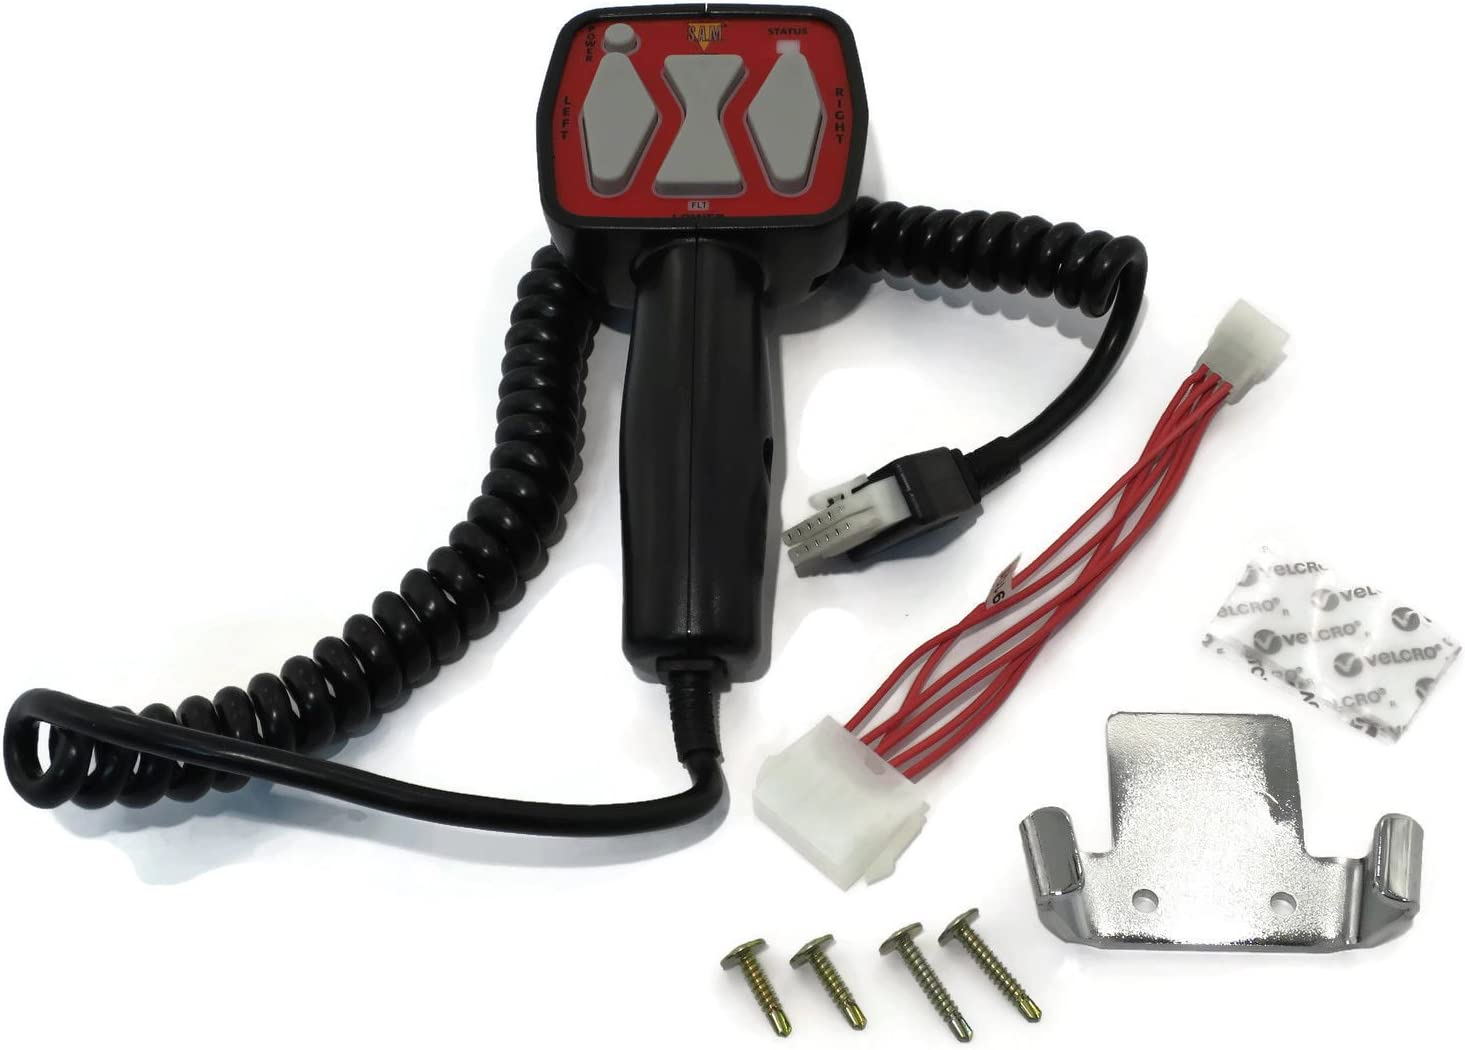 New HAND HELD CONTROLLER for Buyers SAM 1306902 Straight Blade Snow Plows